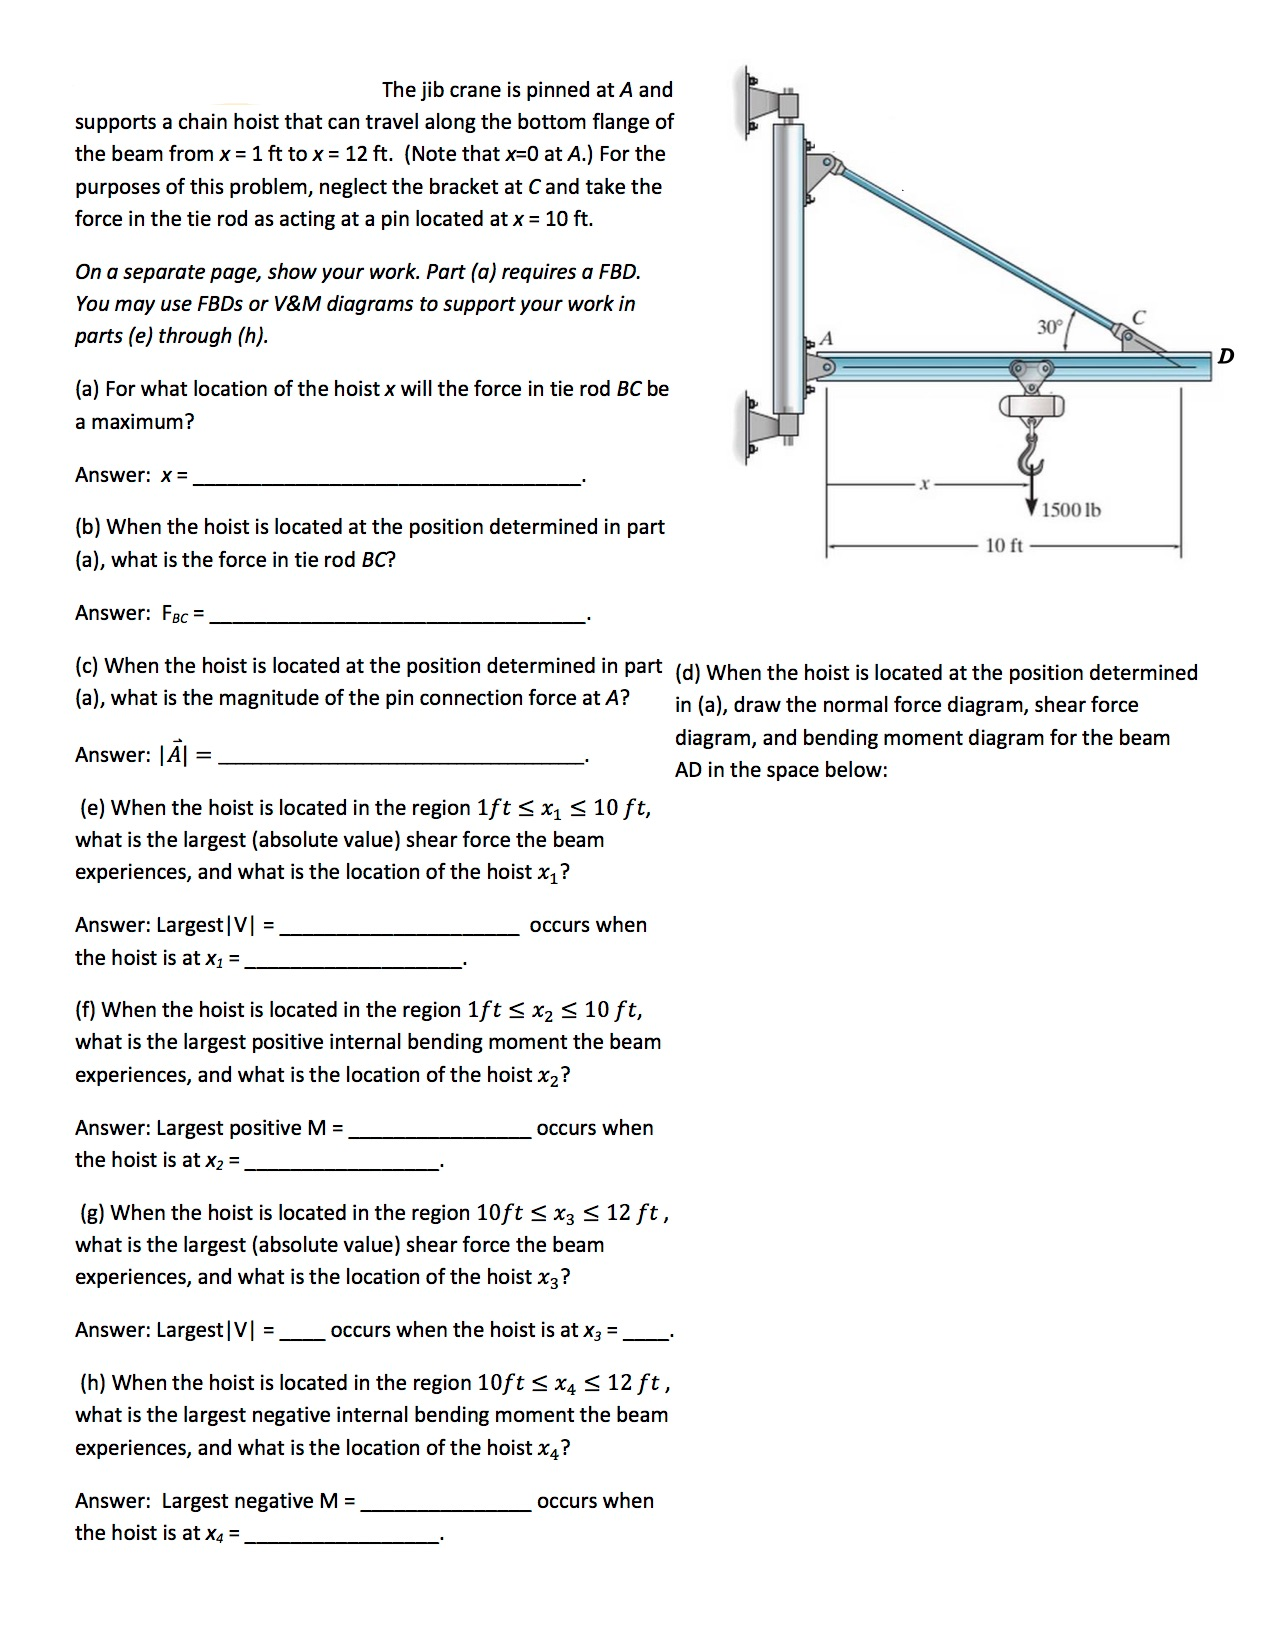 Crane Shear And Moment Diagram Wiring Library Bending Calculator Solved The Jib Is Pinned At A Supports Chain Rh Chegg Com Diagrams Point Loads Examples